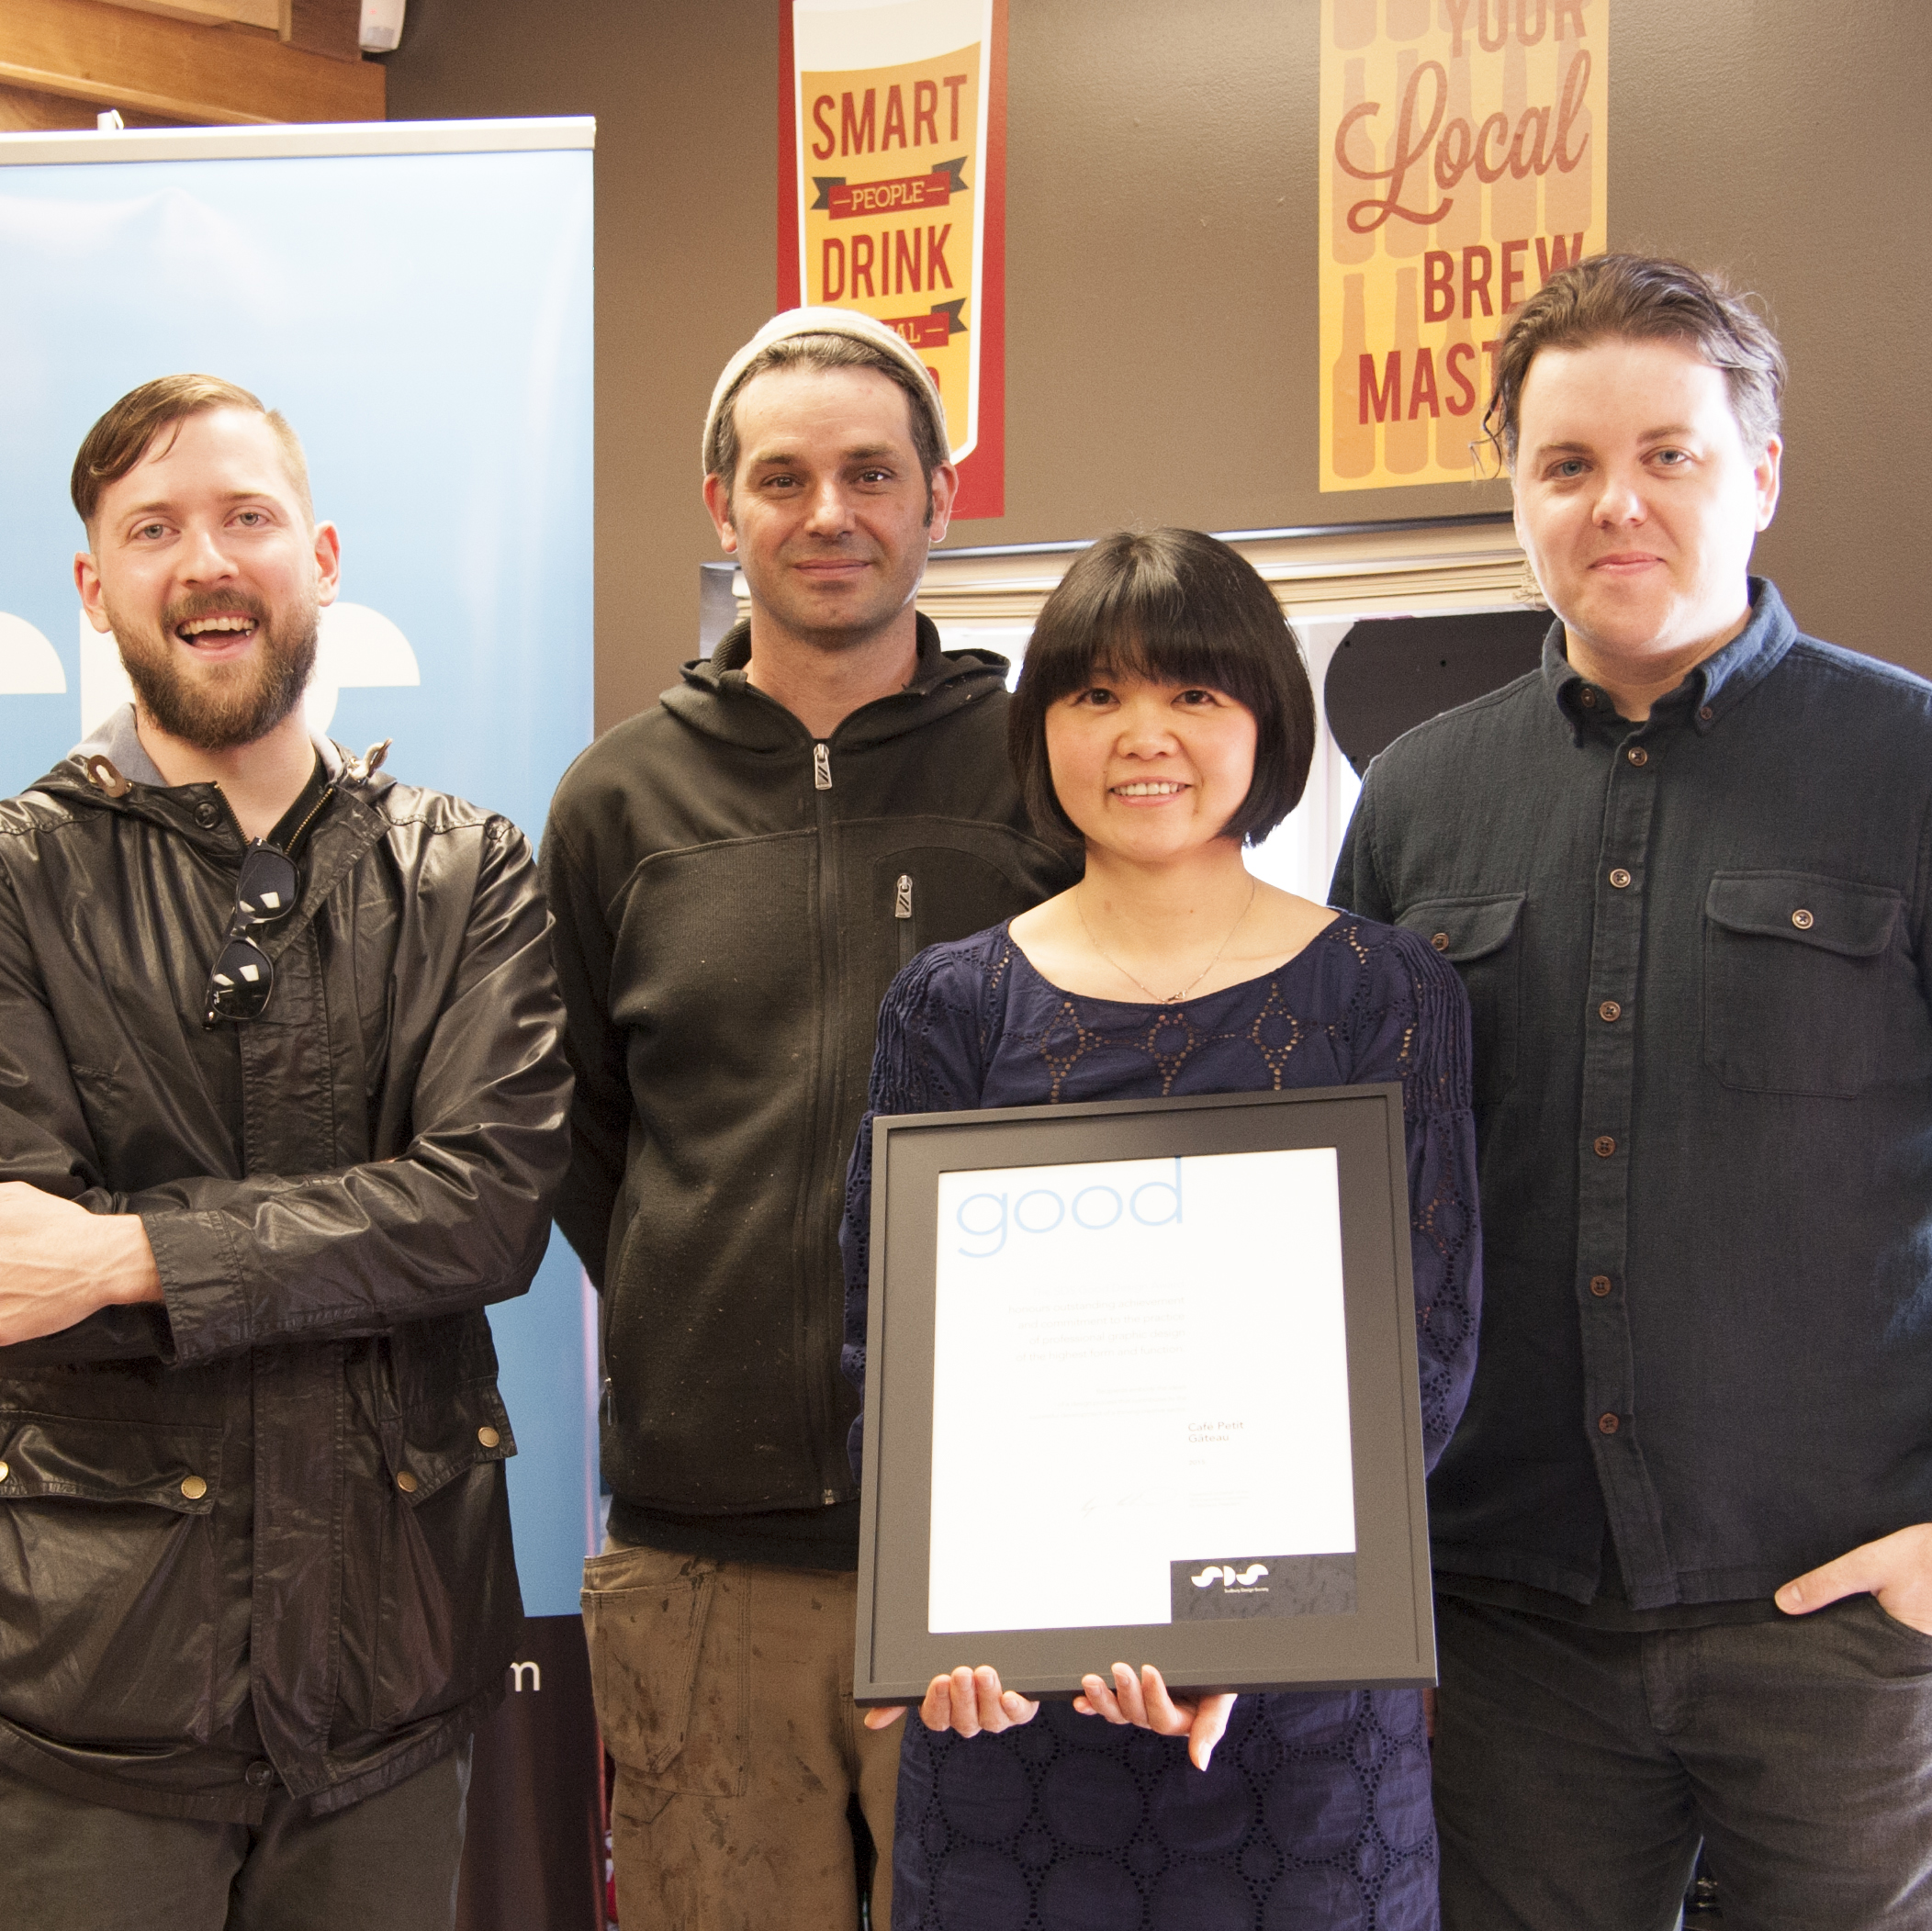 (left to right) Designer Frank Chatrand of Bureau, carpenter Matthew Schultze, and owners Yoshi Kurogi & Derek Brisson.